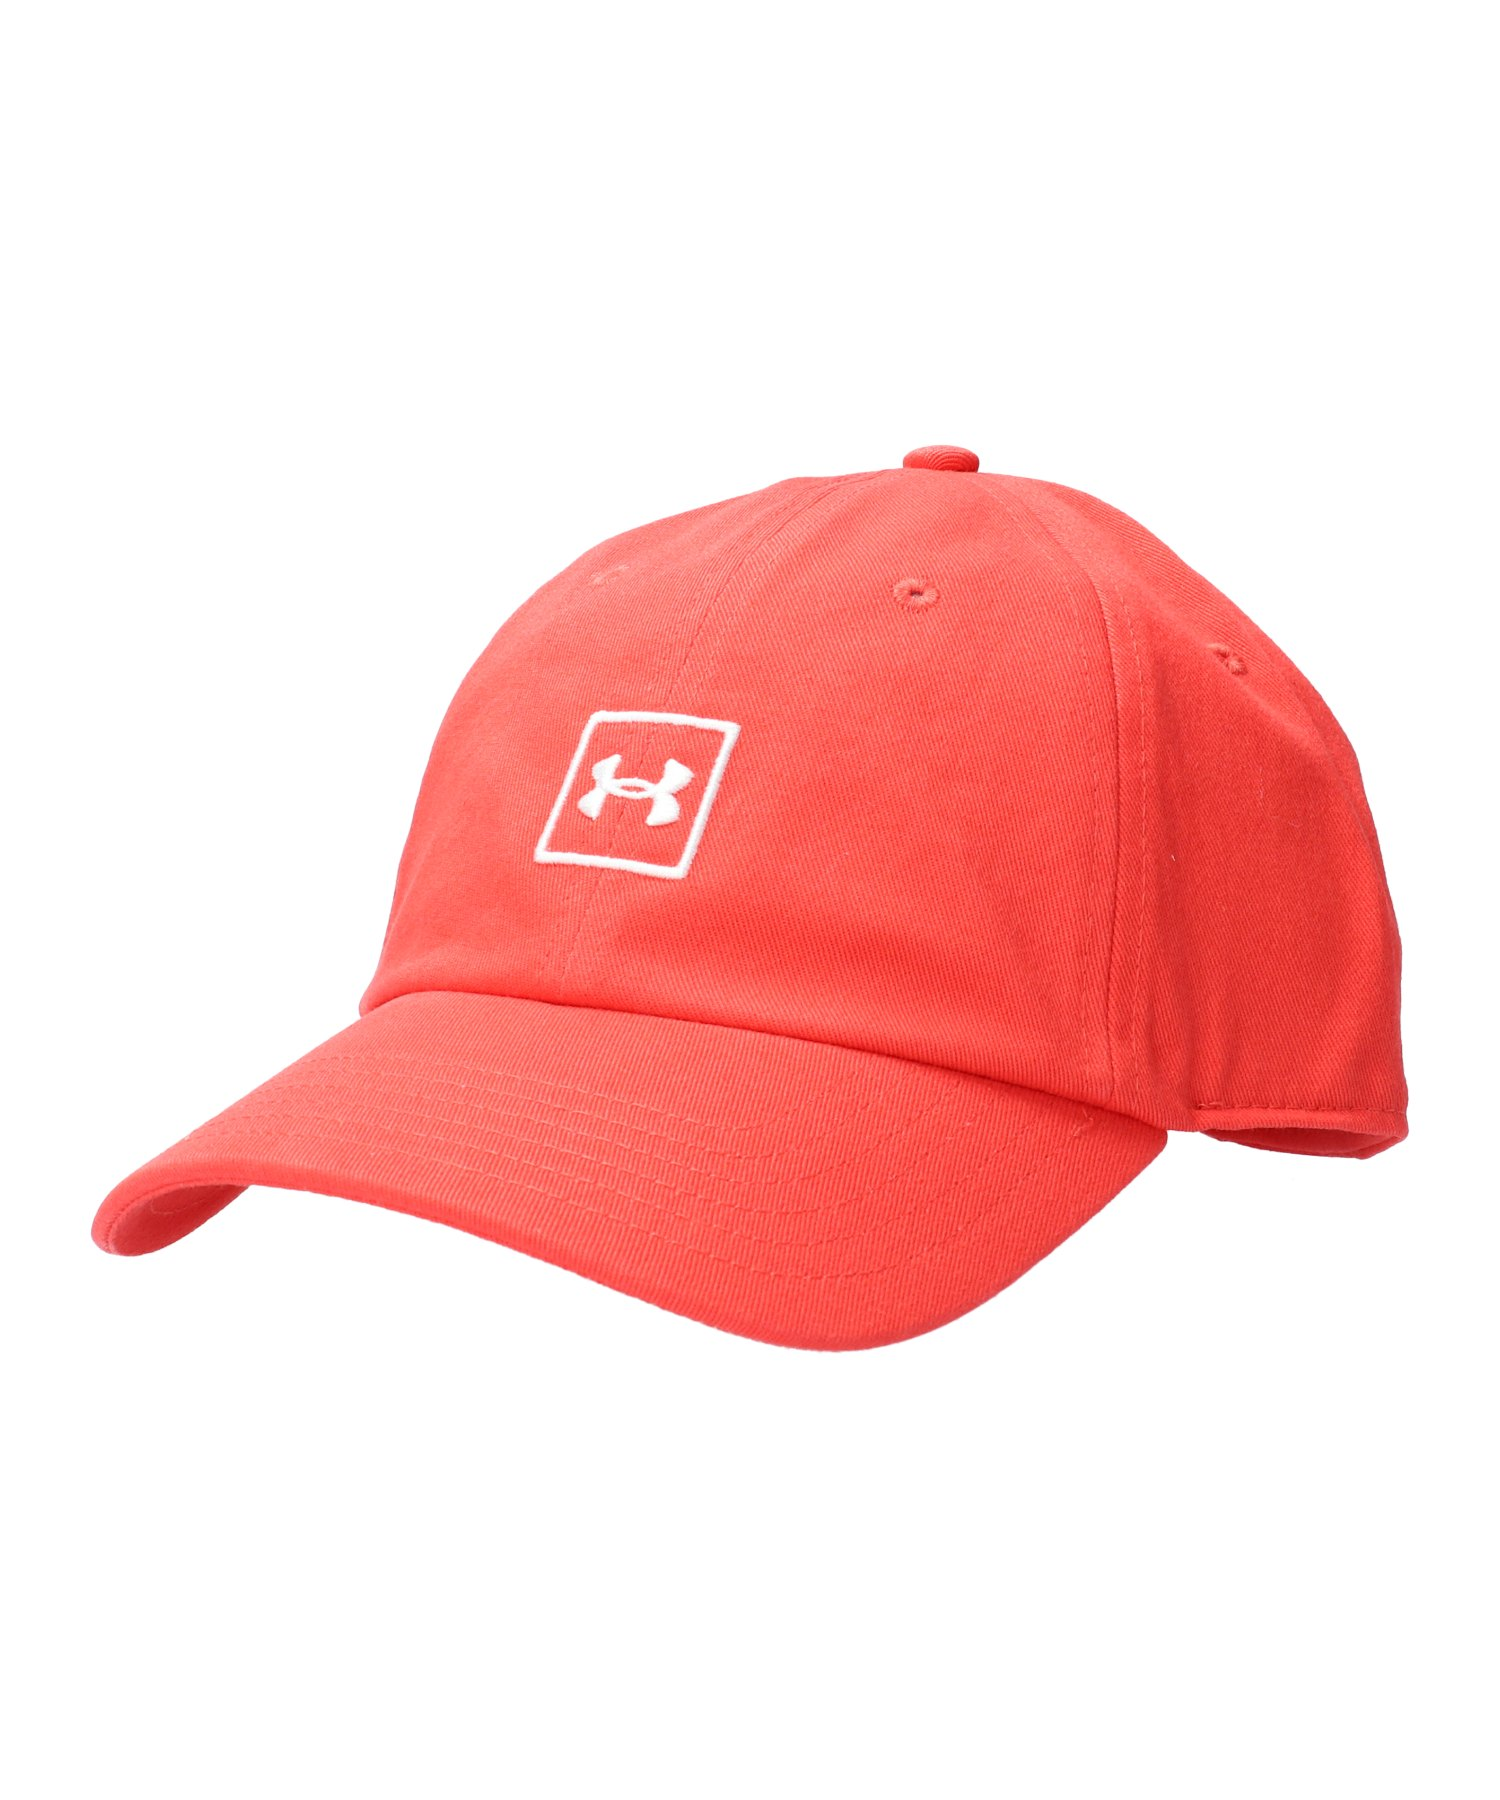 Under Armour Washed Cotton Cap Rot F646 - rot